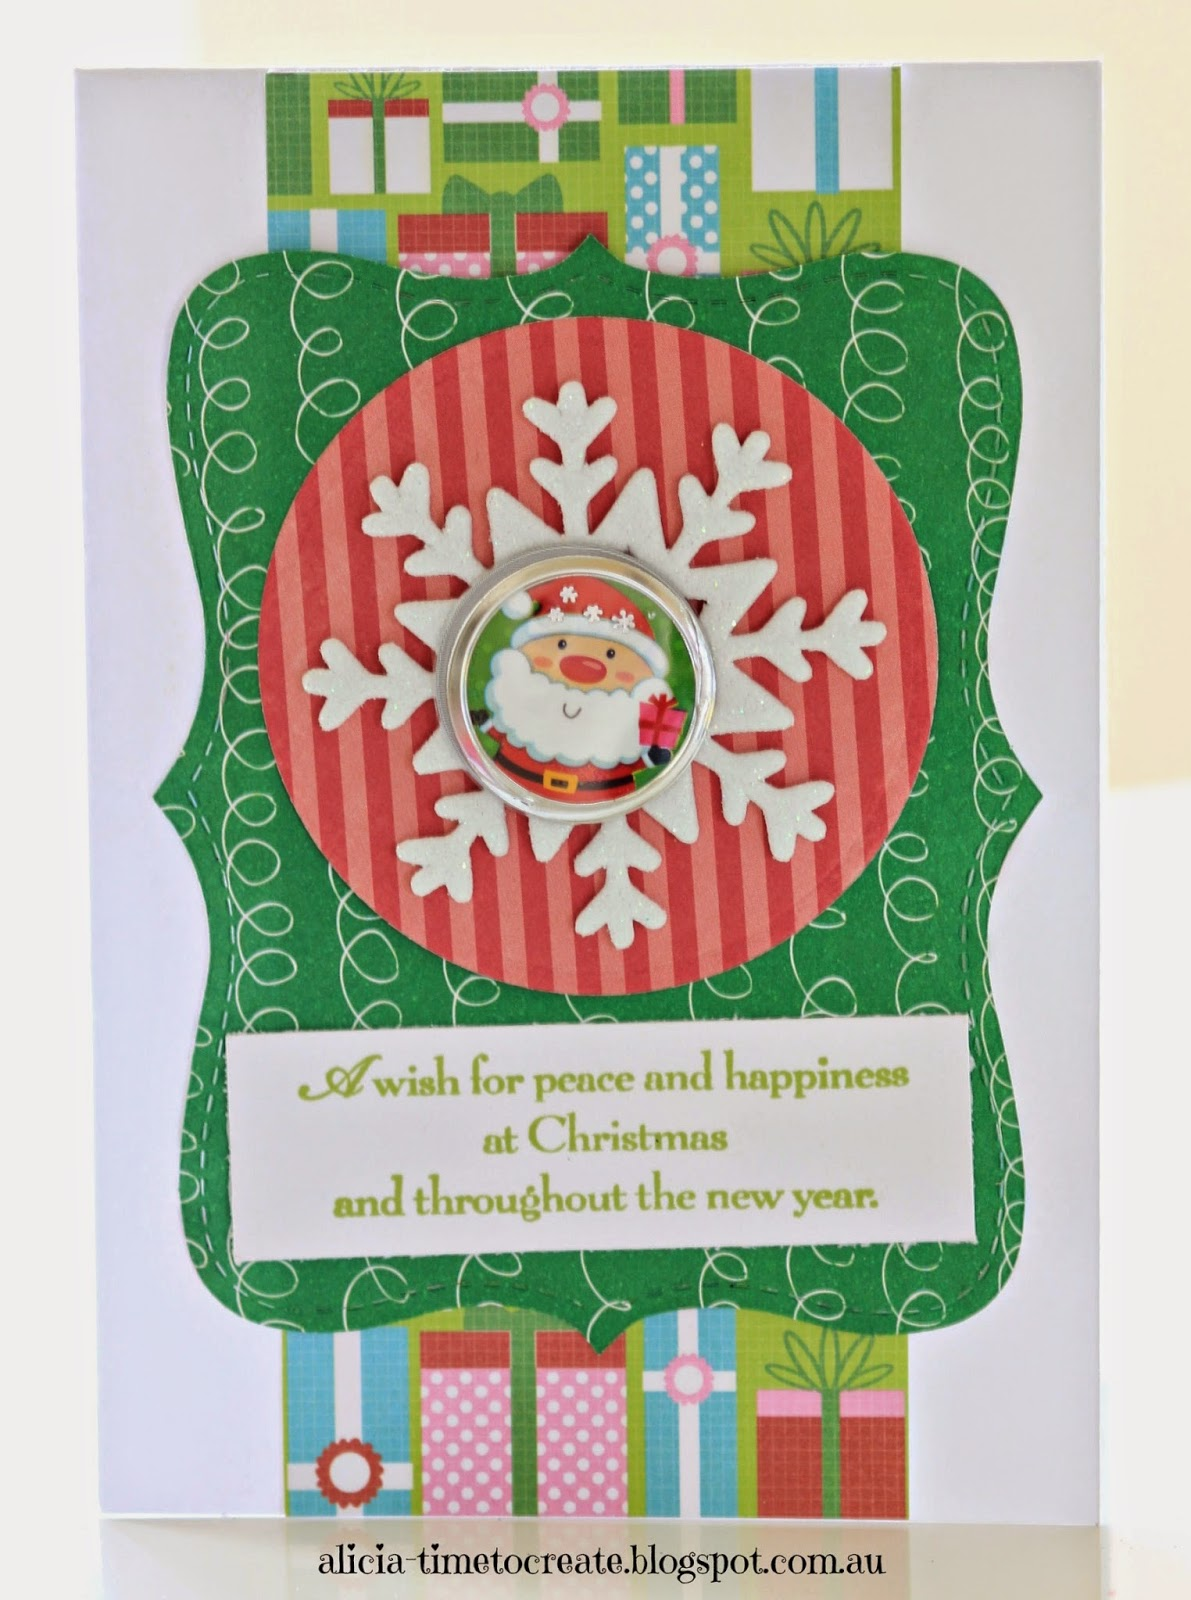 5 Quick and Easy DIY Christmas Card Ideas